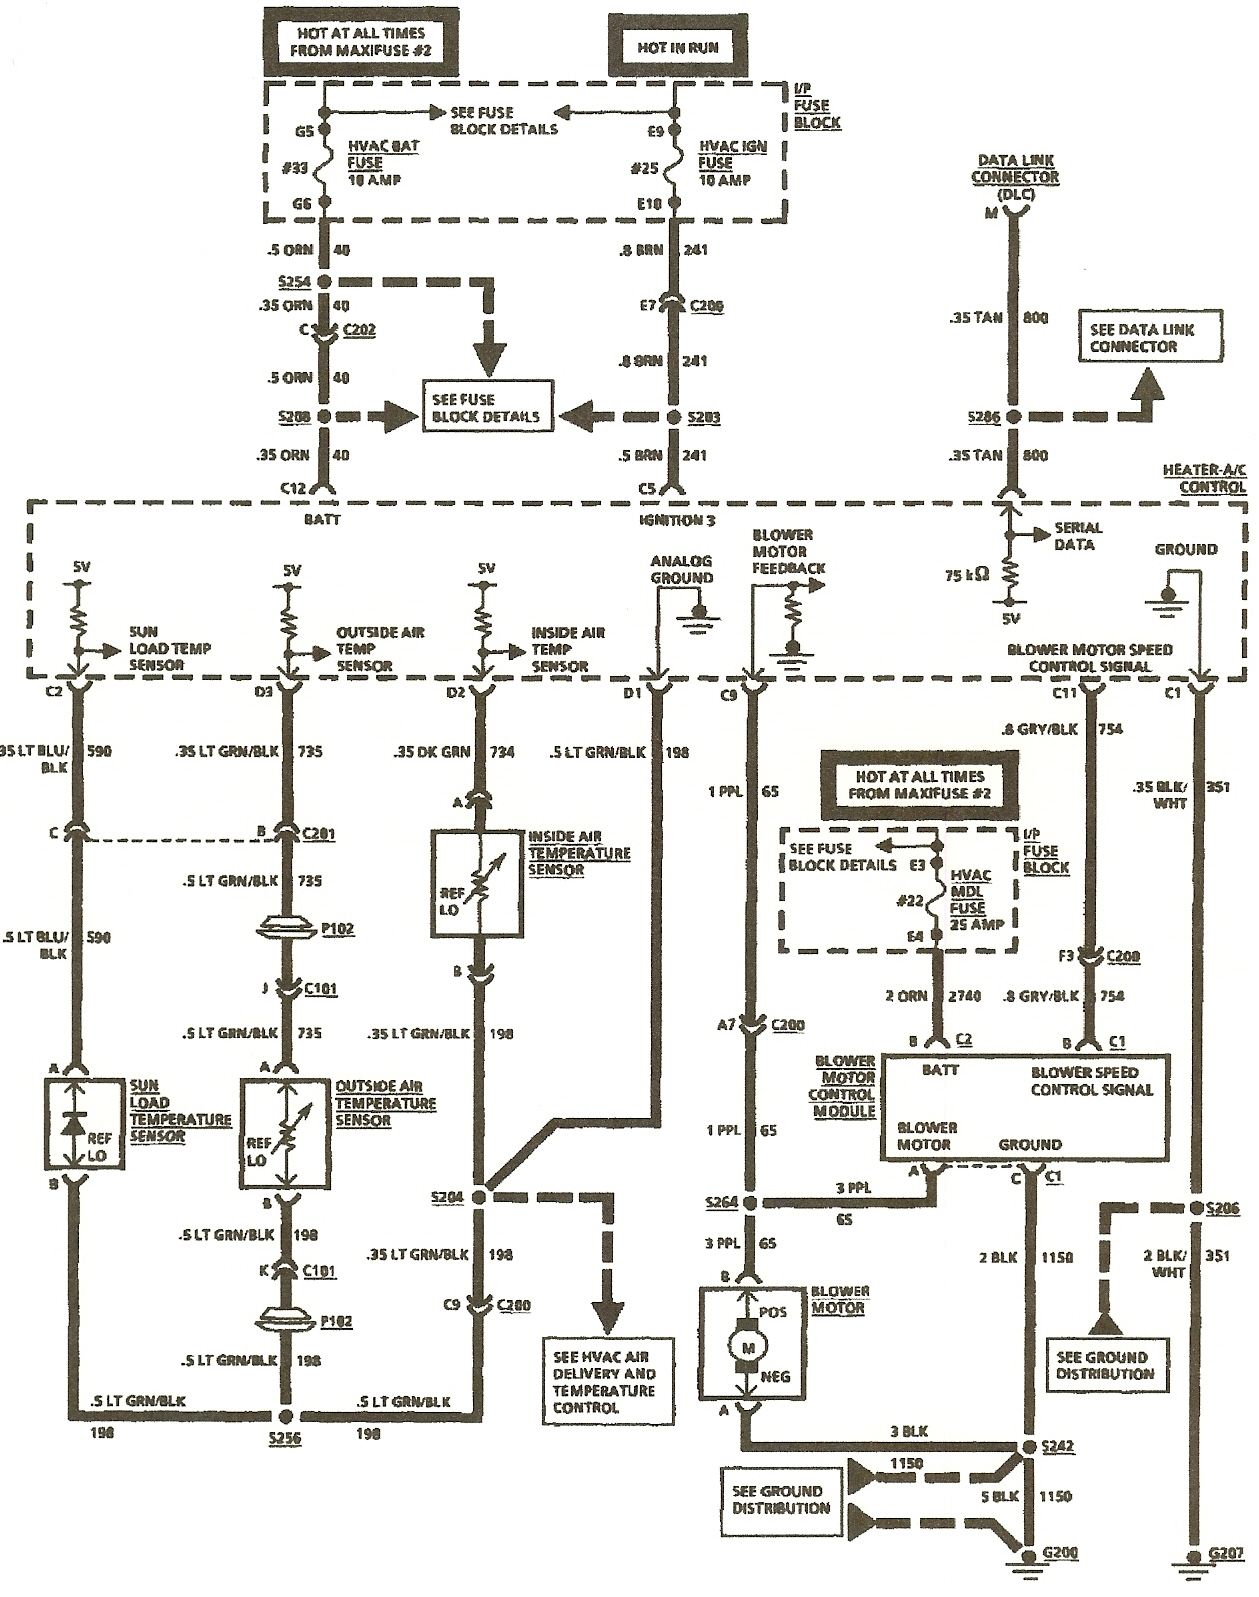 I need a wiring schematic for a 1994 Cadillac. Fleetwood a/c control head. JustAnswer